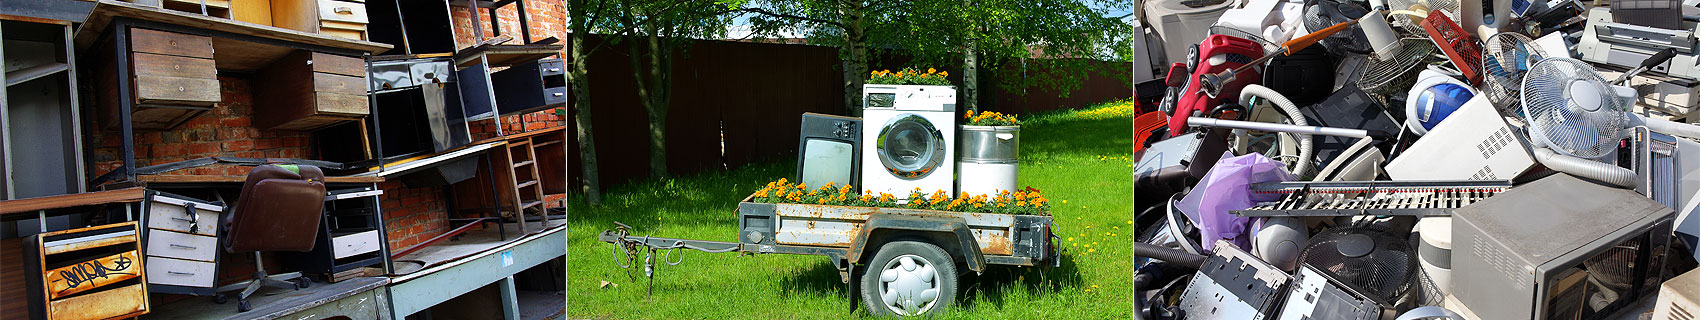 junk removal service in edmonton for furniture removal, landscaping debris, appliances and other household items